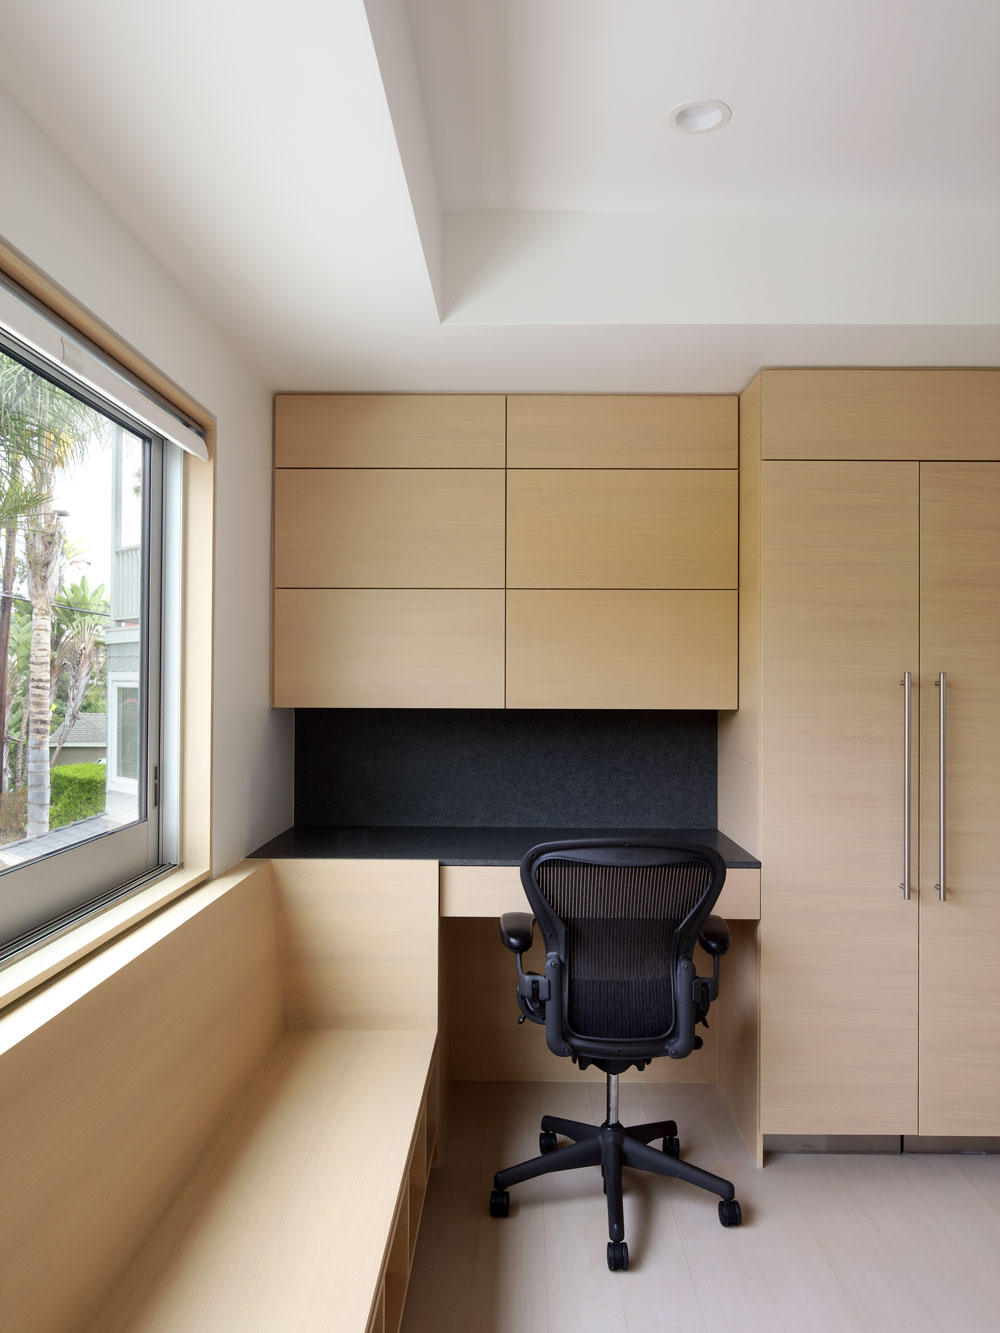 silicon-bay-built-in-desk-modern-cabinets.jpg